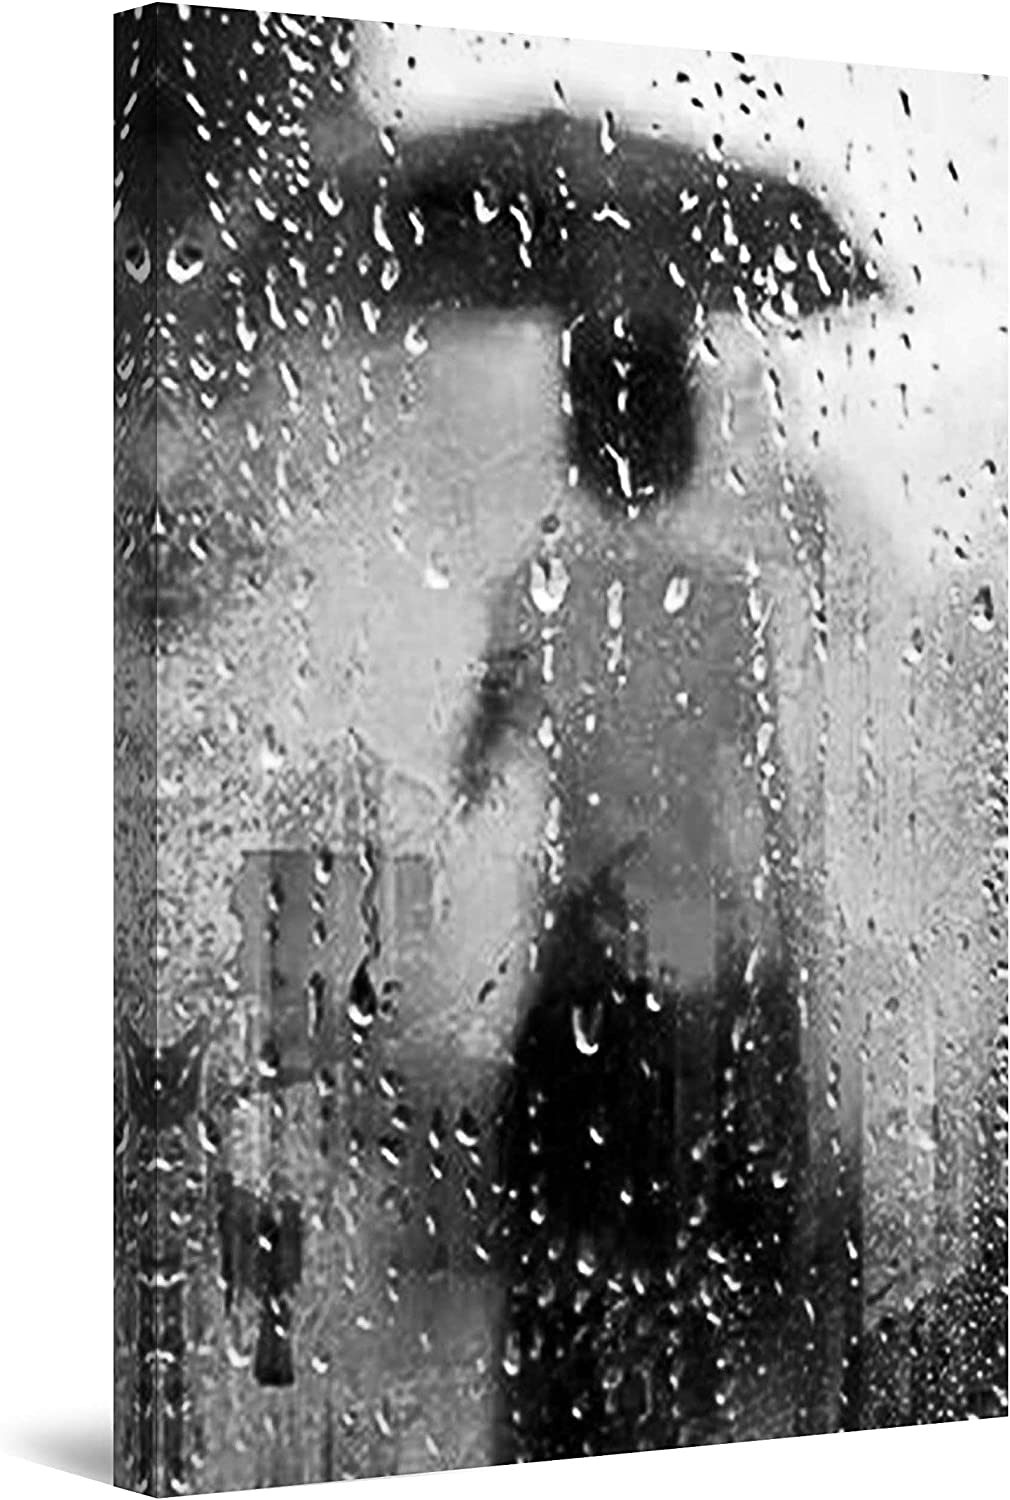 "Startonight Canvas Wall Art Black and White Abstract Lady and Umbrella on The Rain, Framed Quantic Home Decor for Bedroom 24"" x 36"""